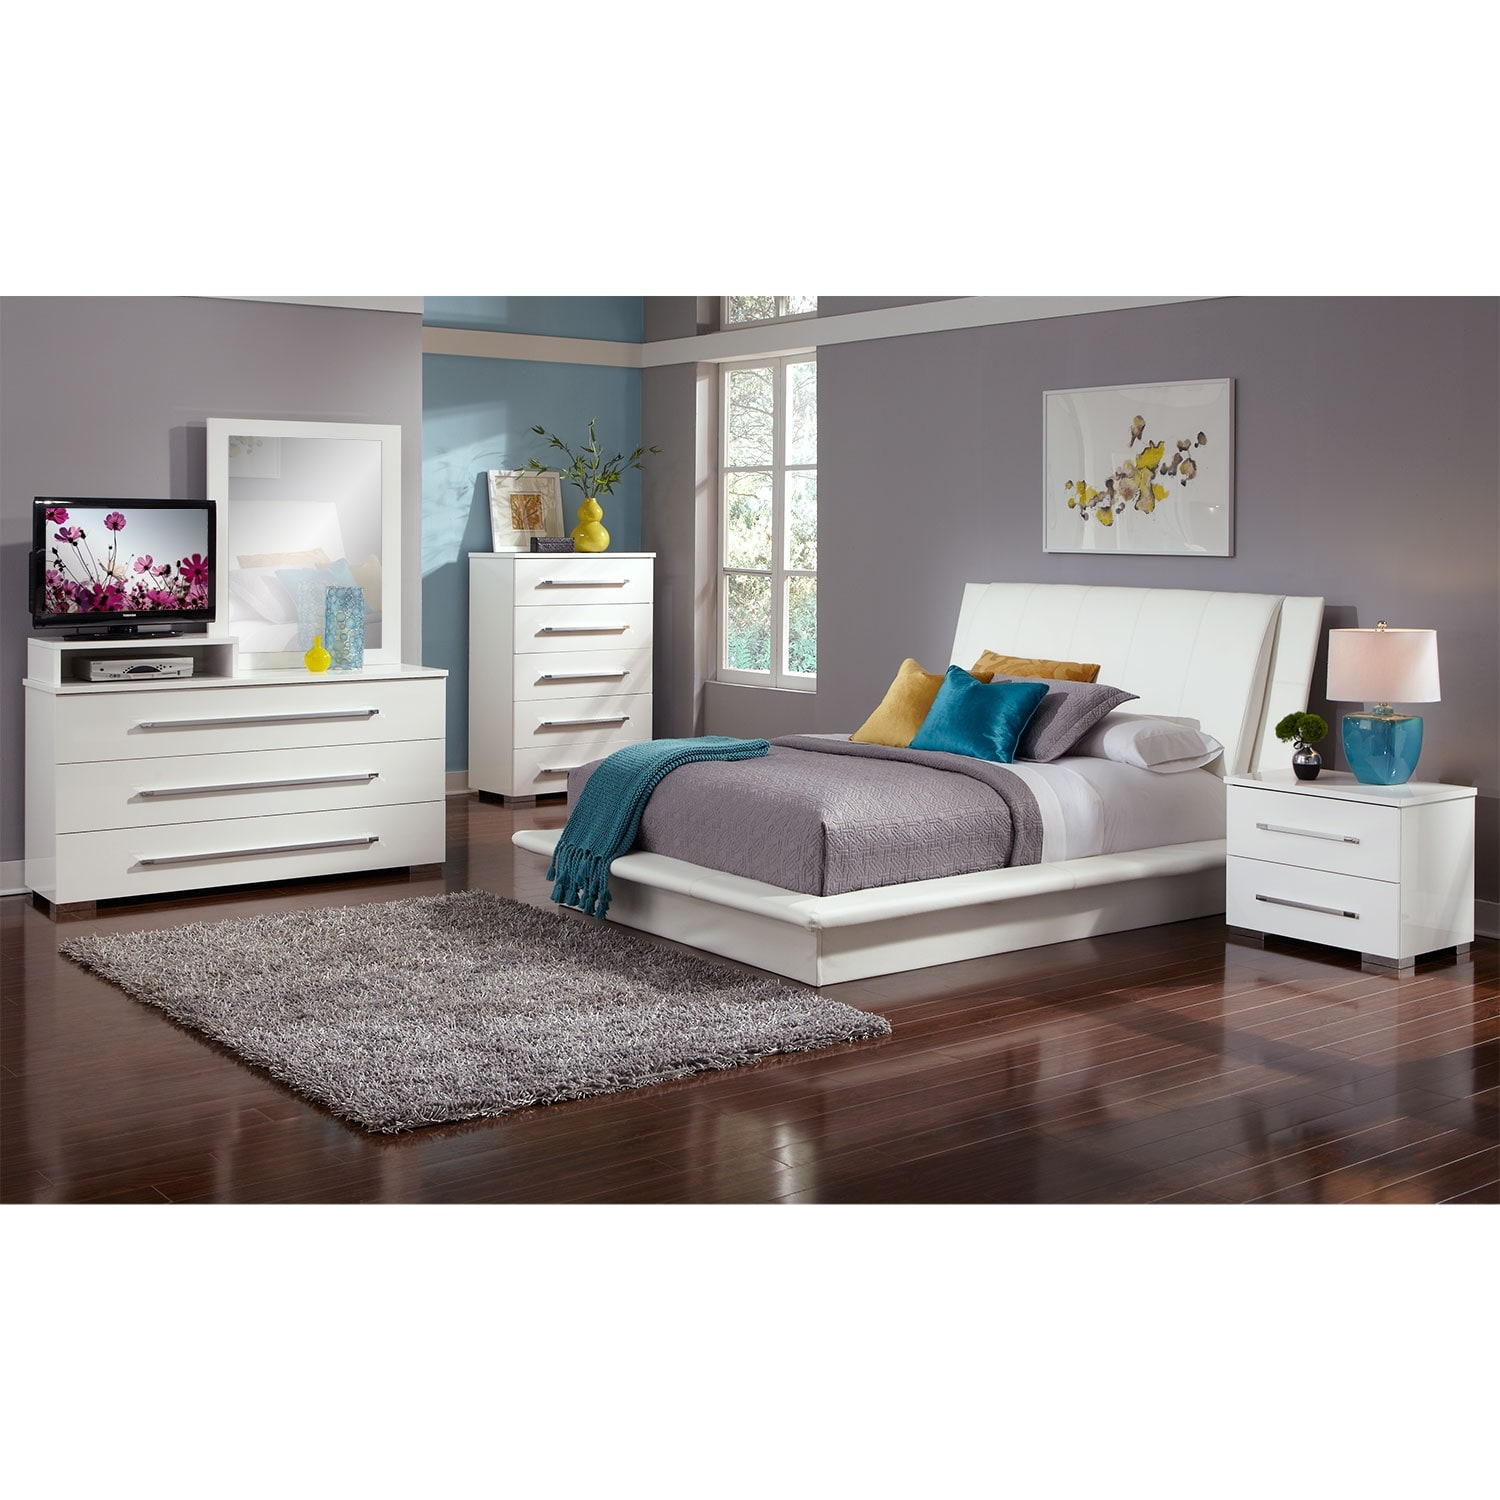 dimora queen upholstered bed - white | american signature furniture